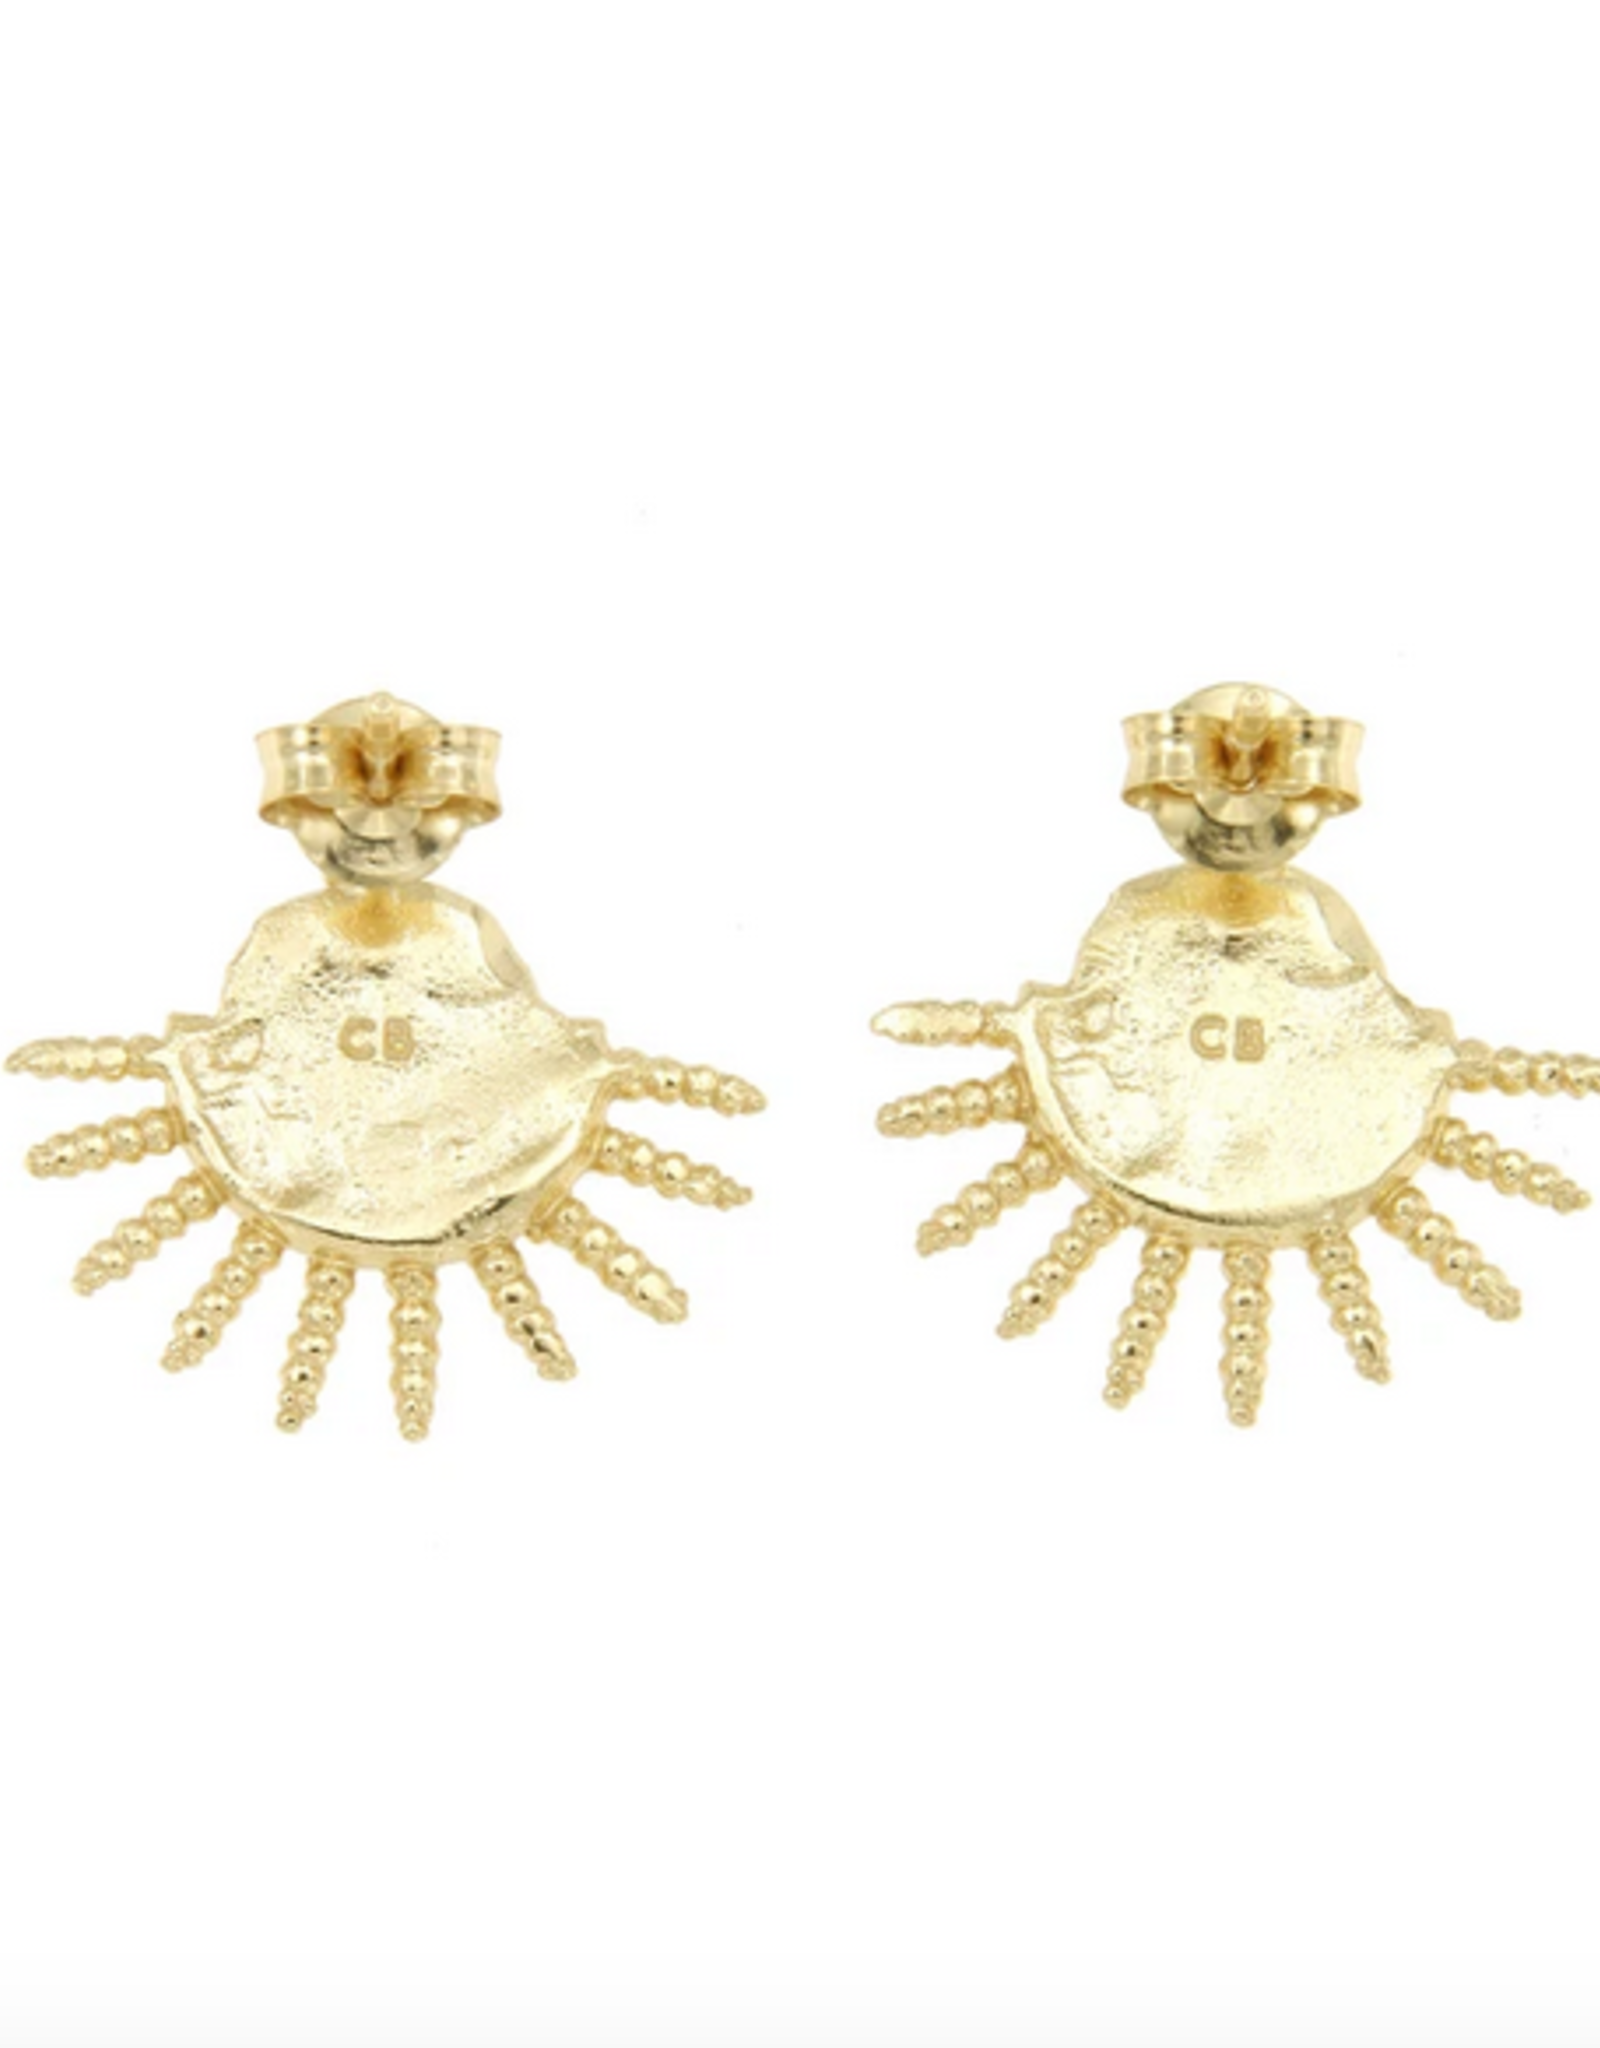 Cleopatra's Bling Lampetia Studs goldplated